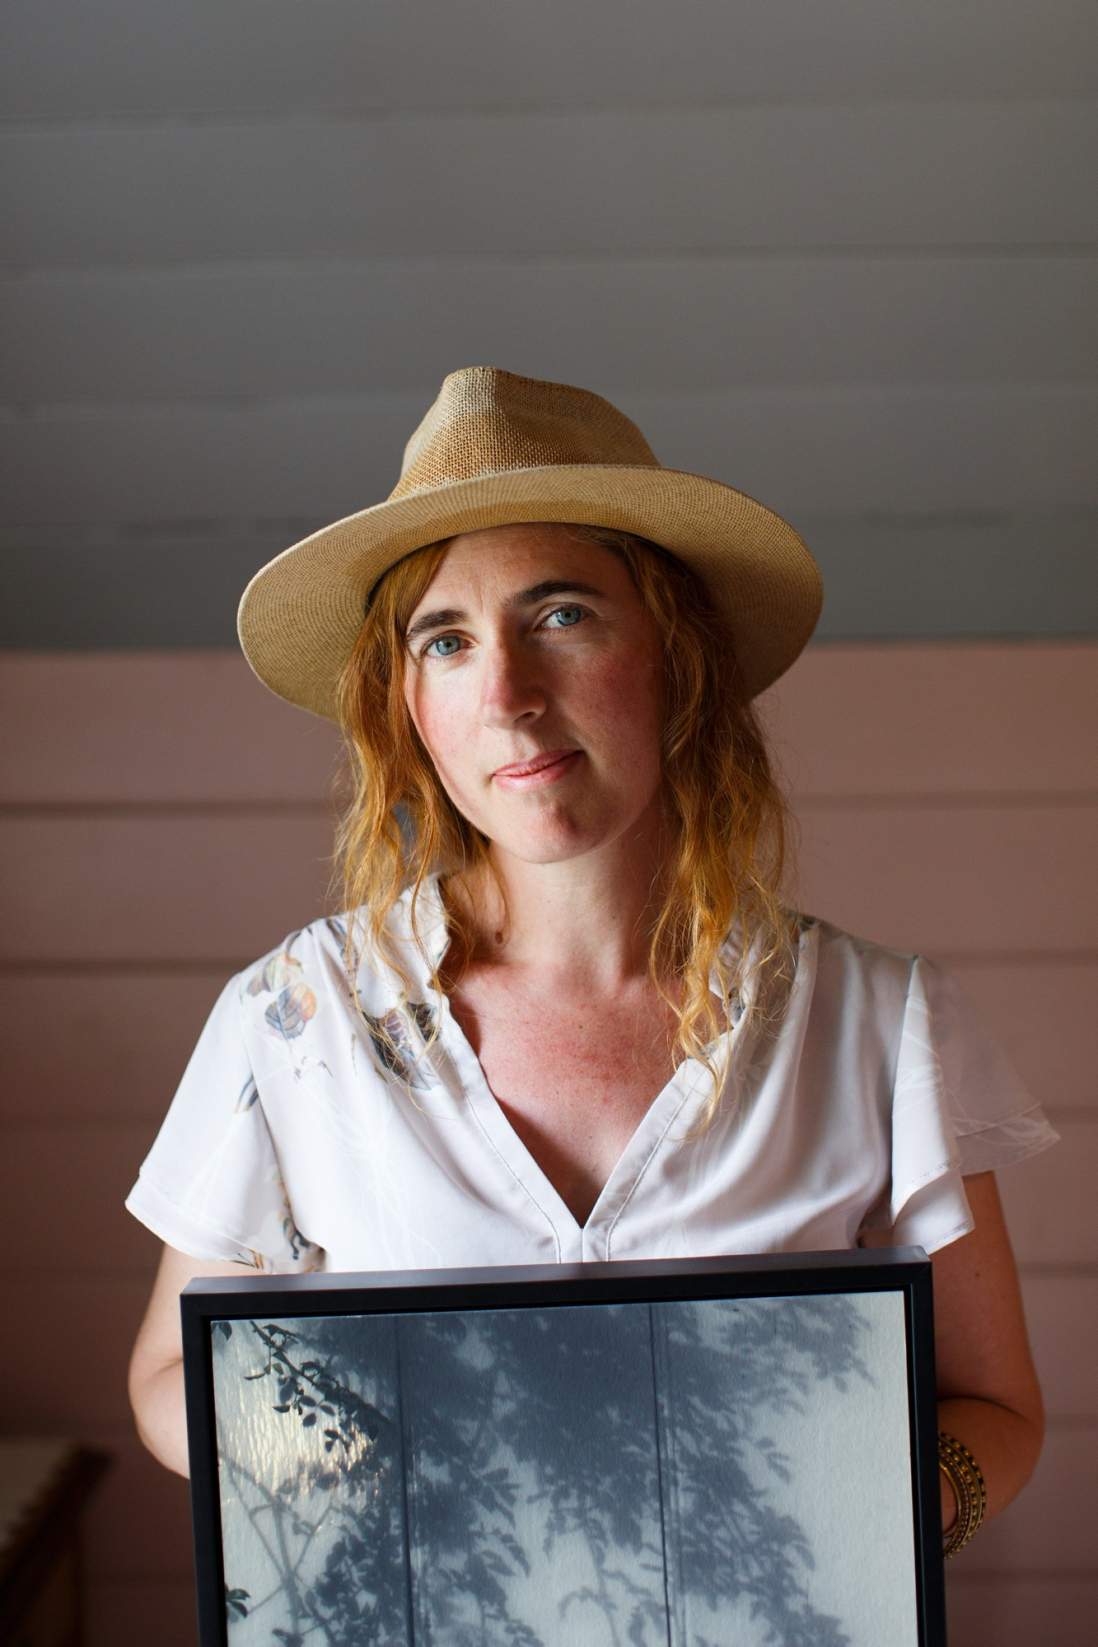 Women in straw hat and white shirt holding photographic artwork